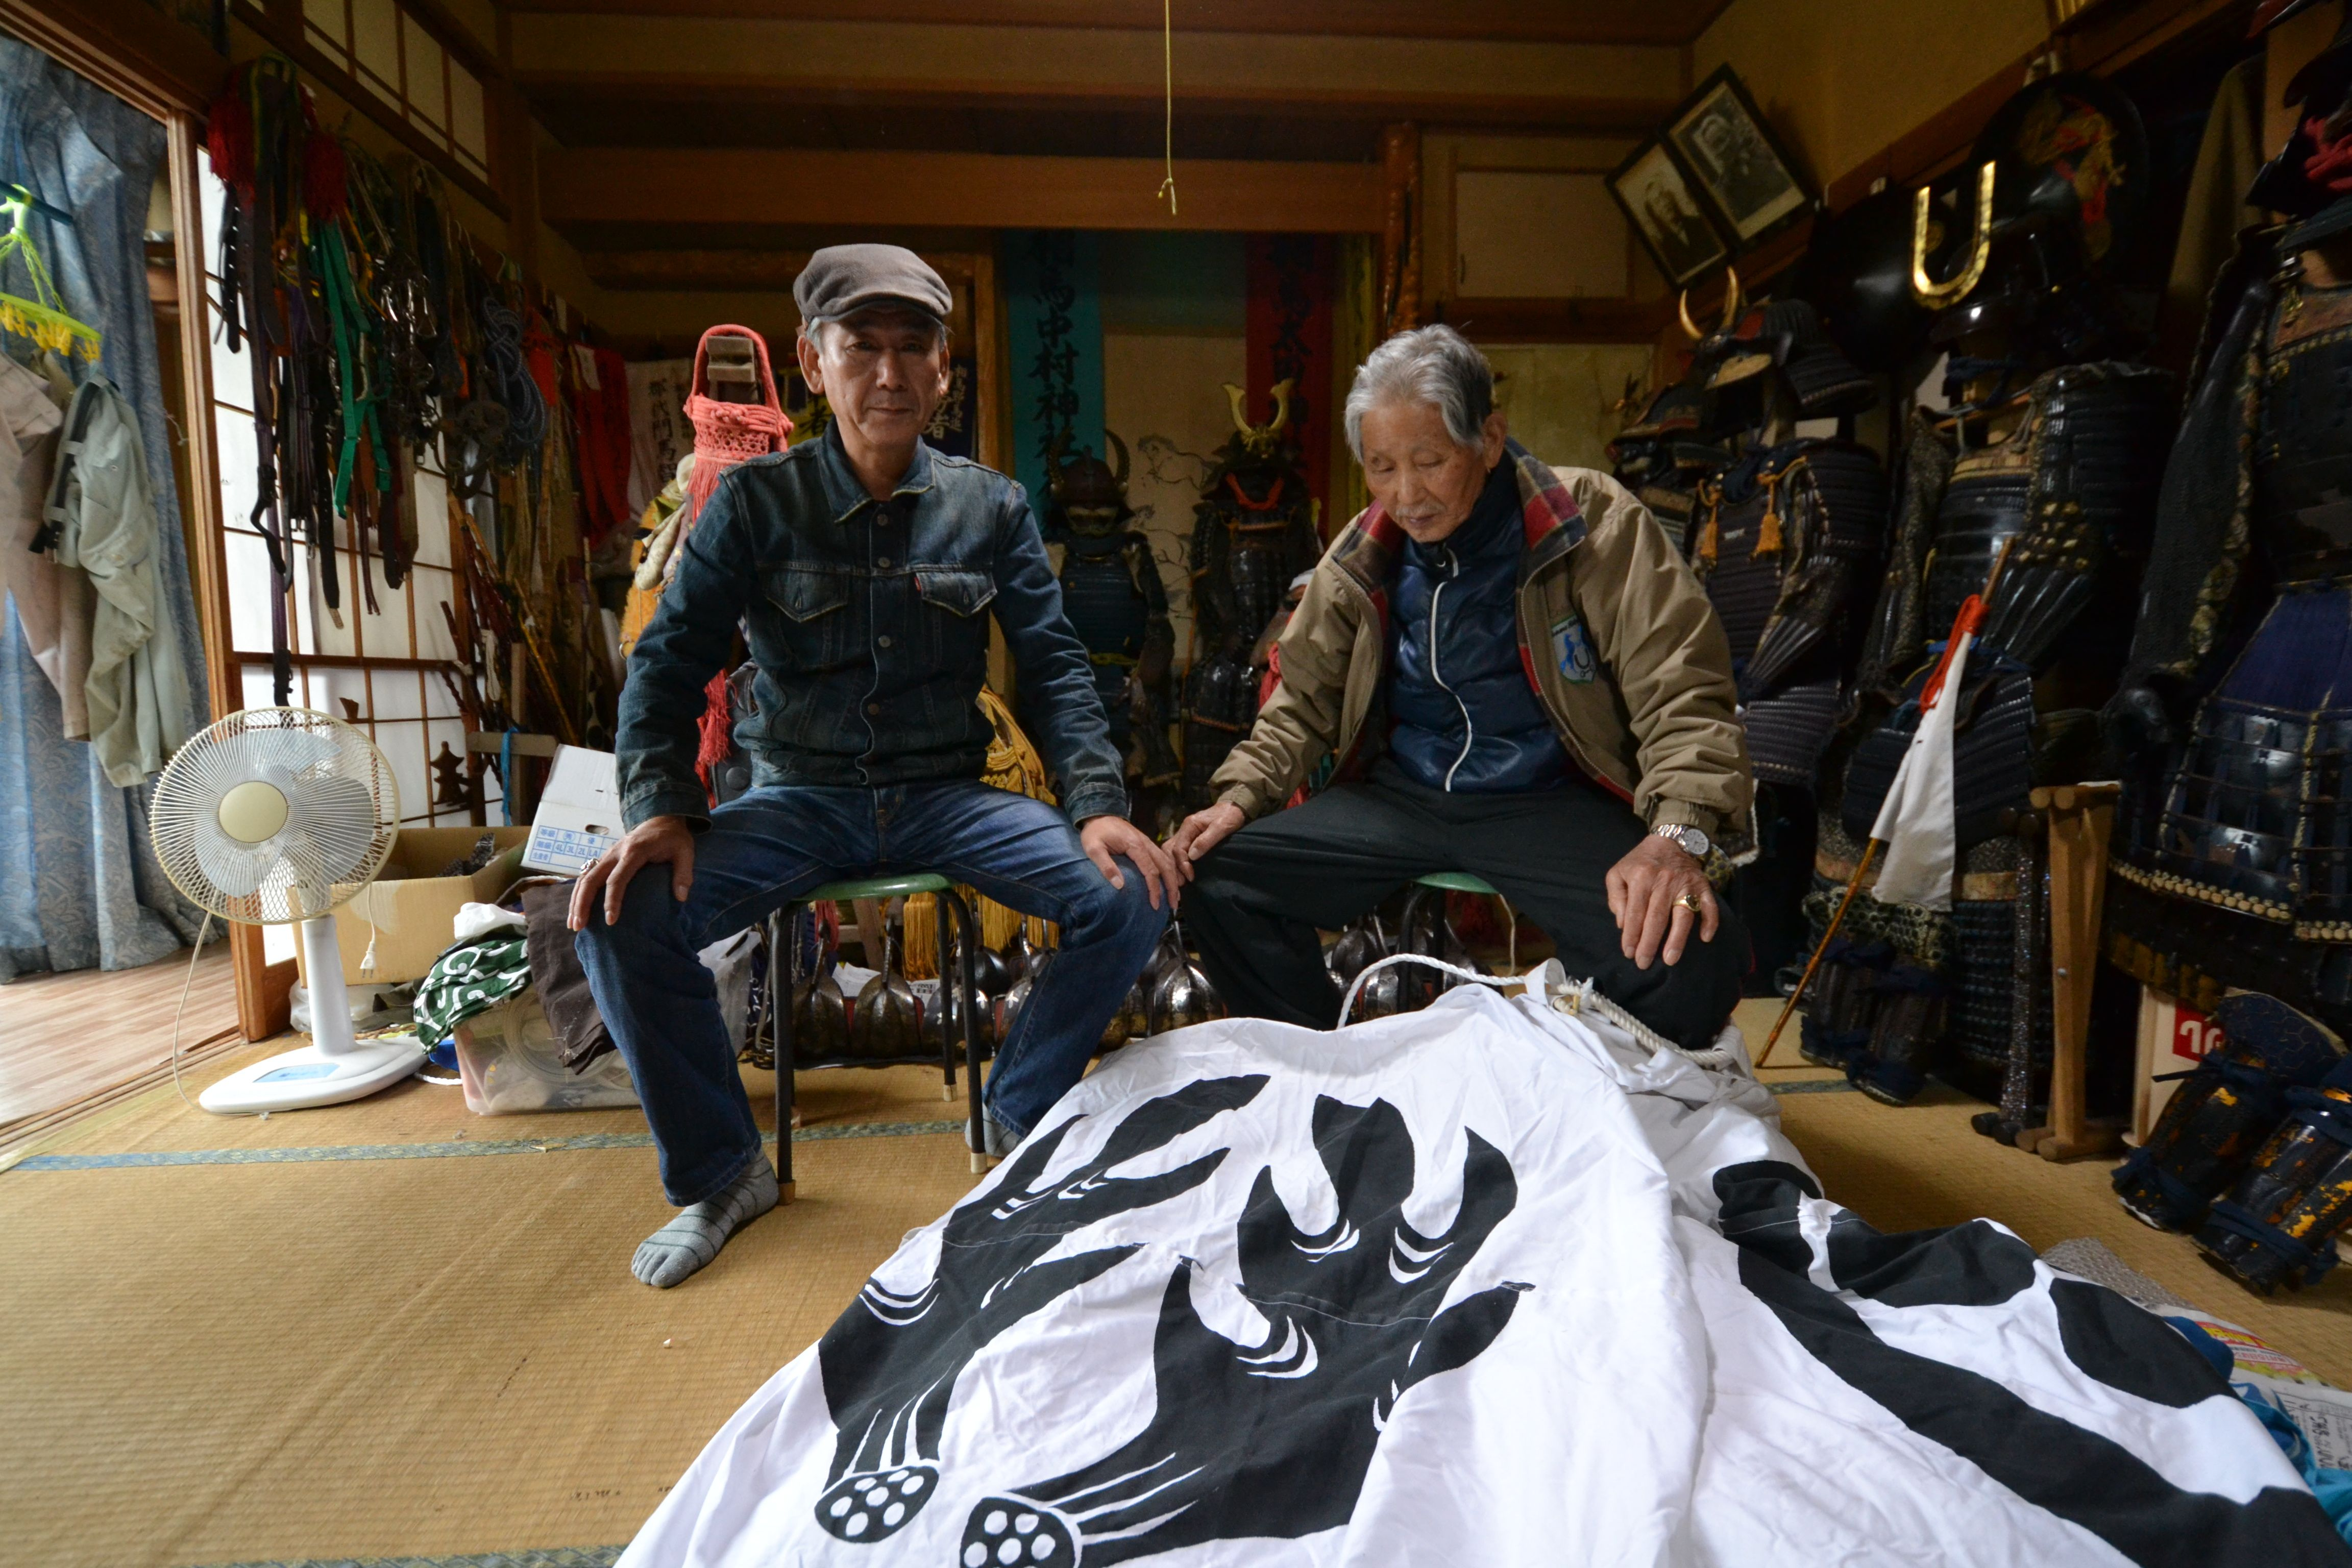 minamisoma samurai monma and son in house with armor.jpg